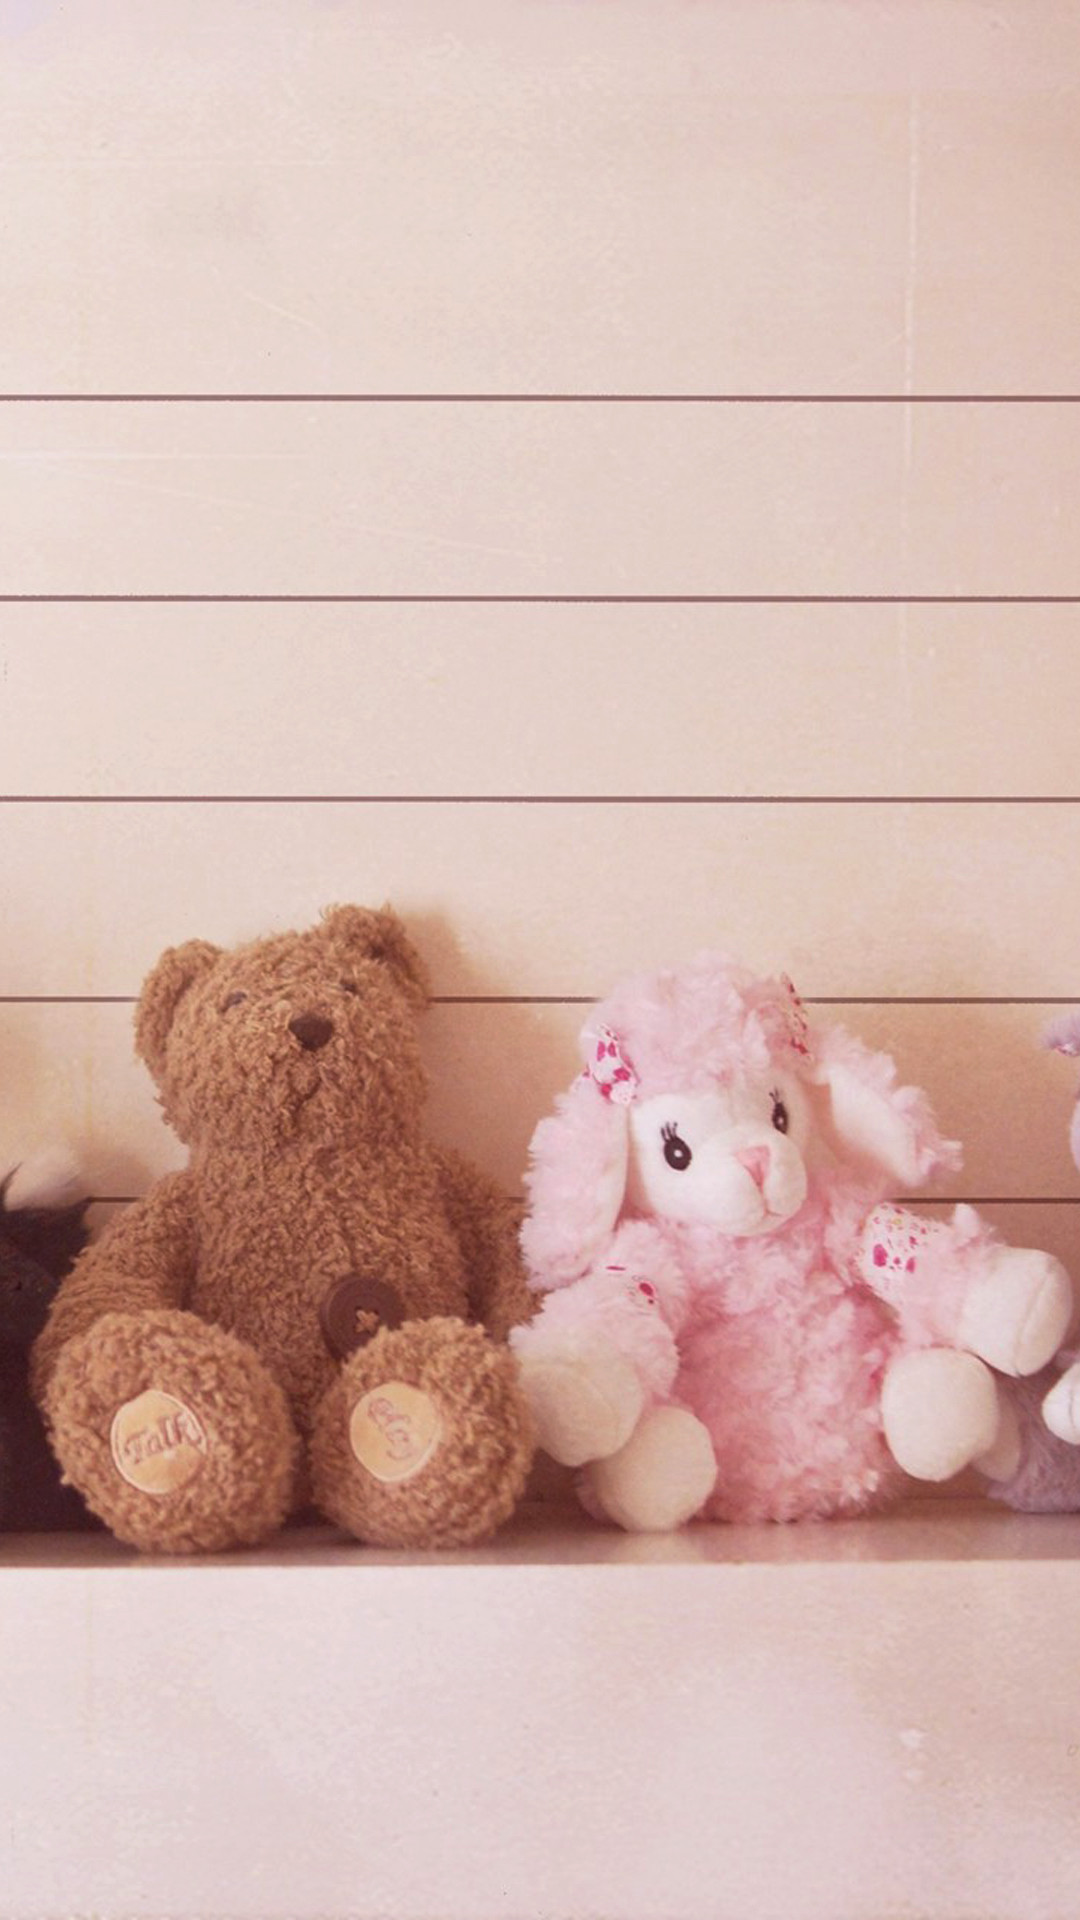 cute teddy bear wallpapers 183��